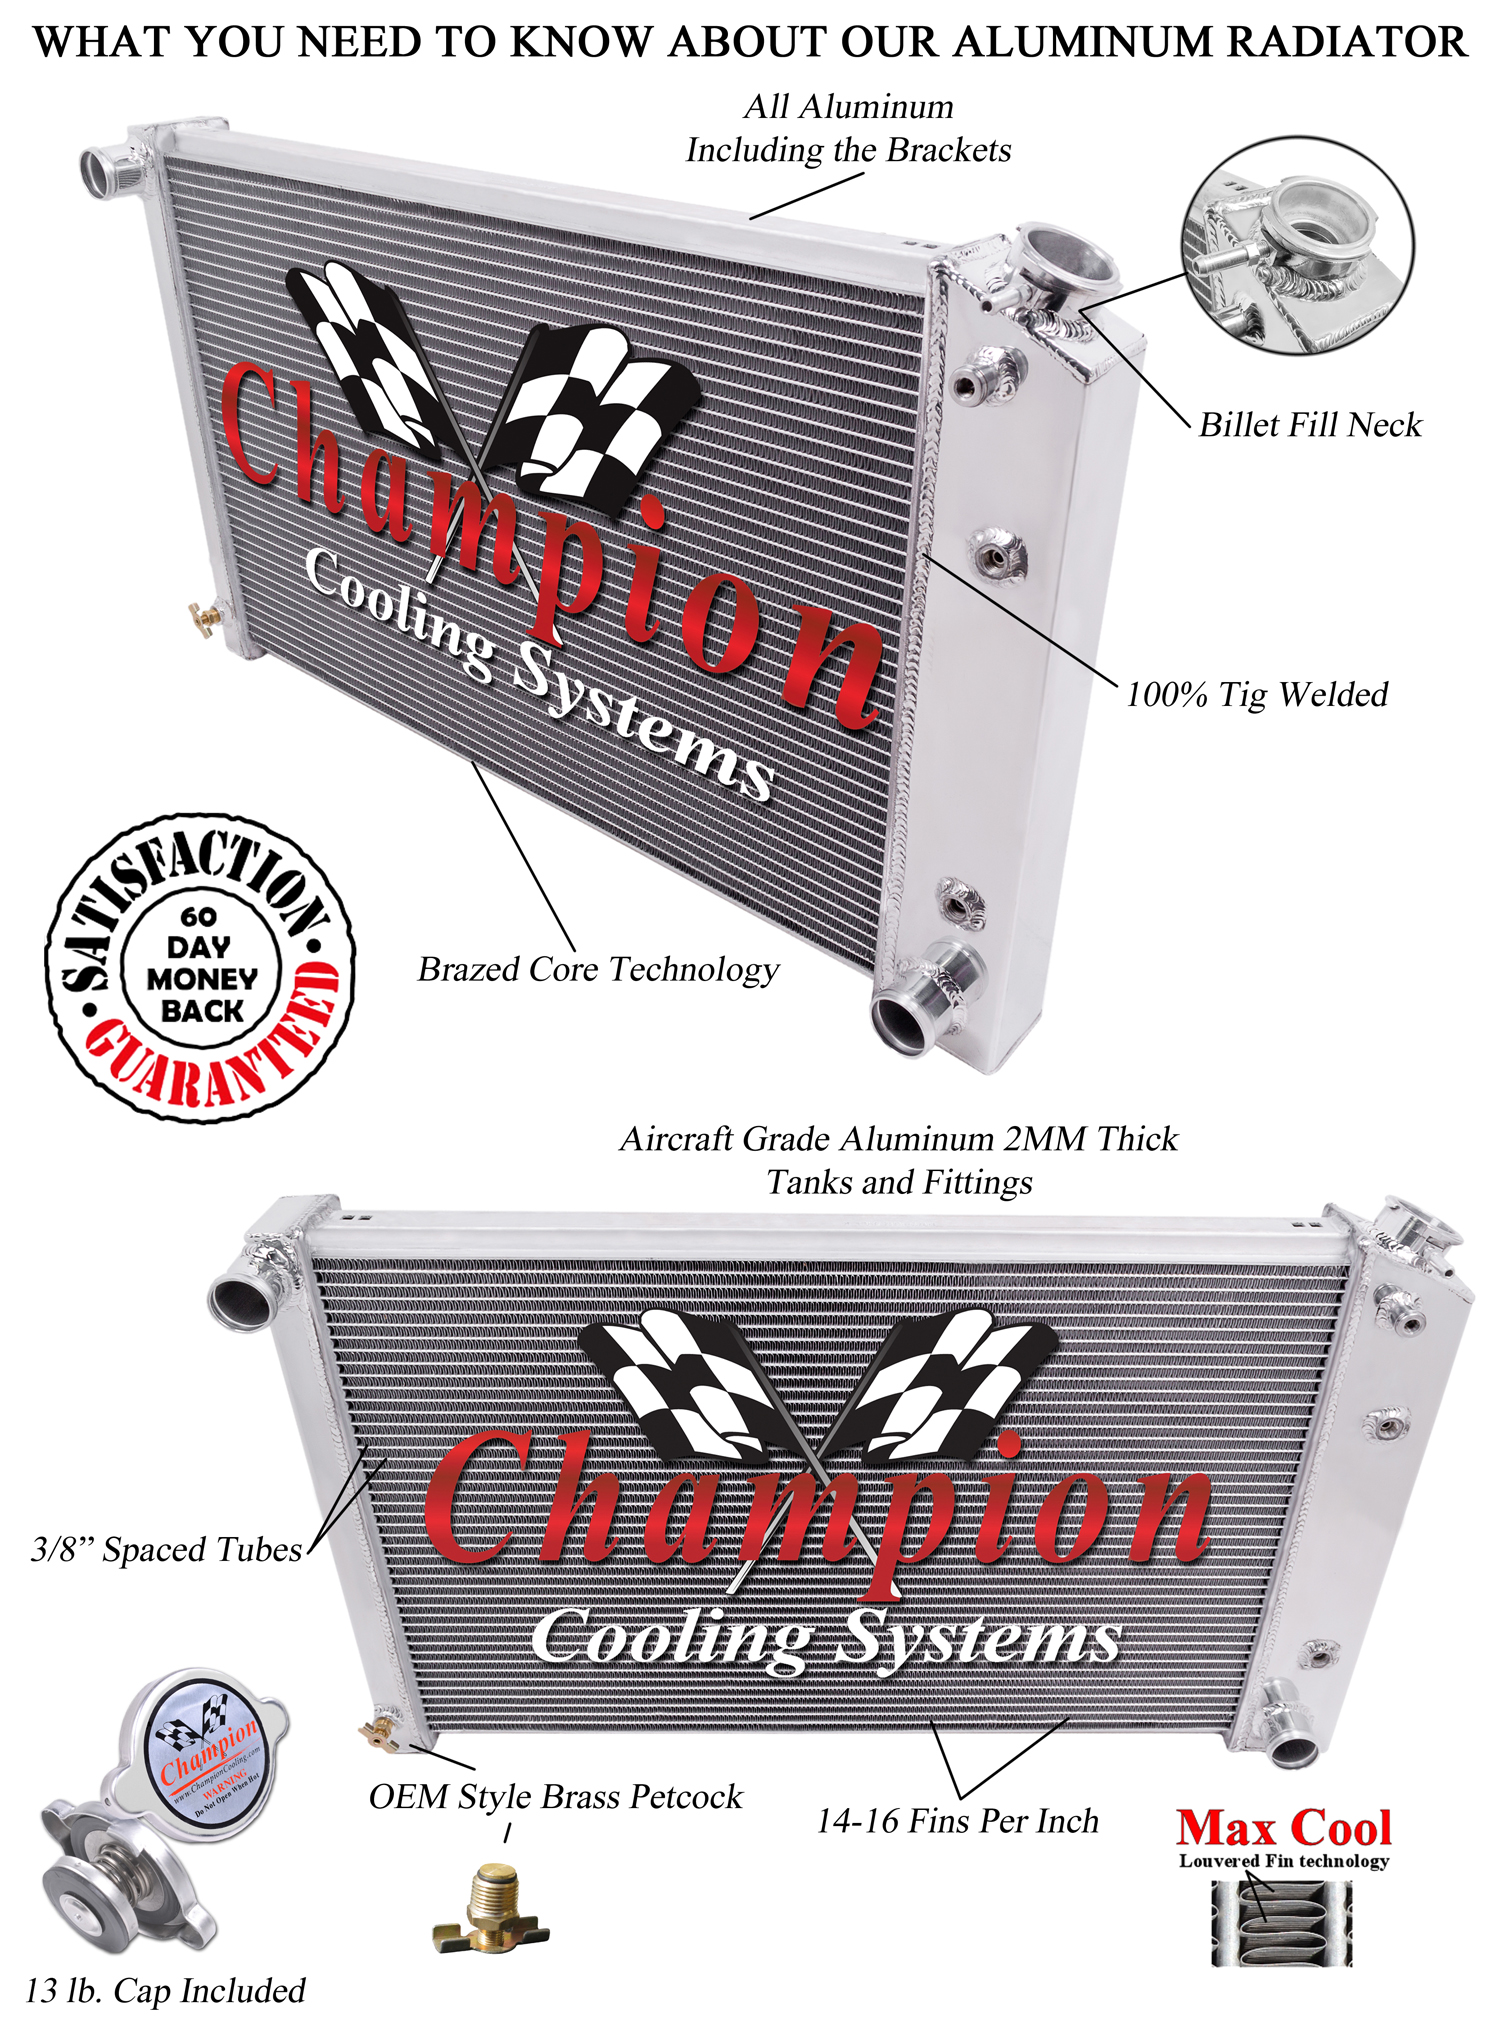 http://www.championcooling.com/photos/Photos%20White/Without%20Fans/162/162_white_diagram_champion.jpg